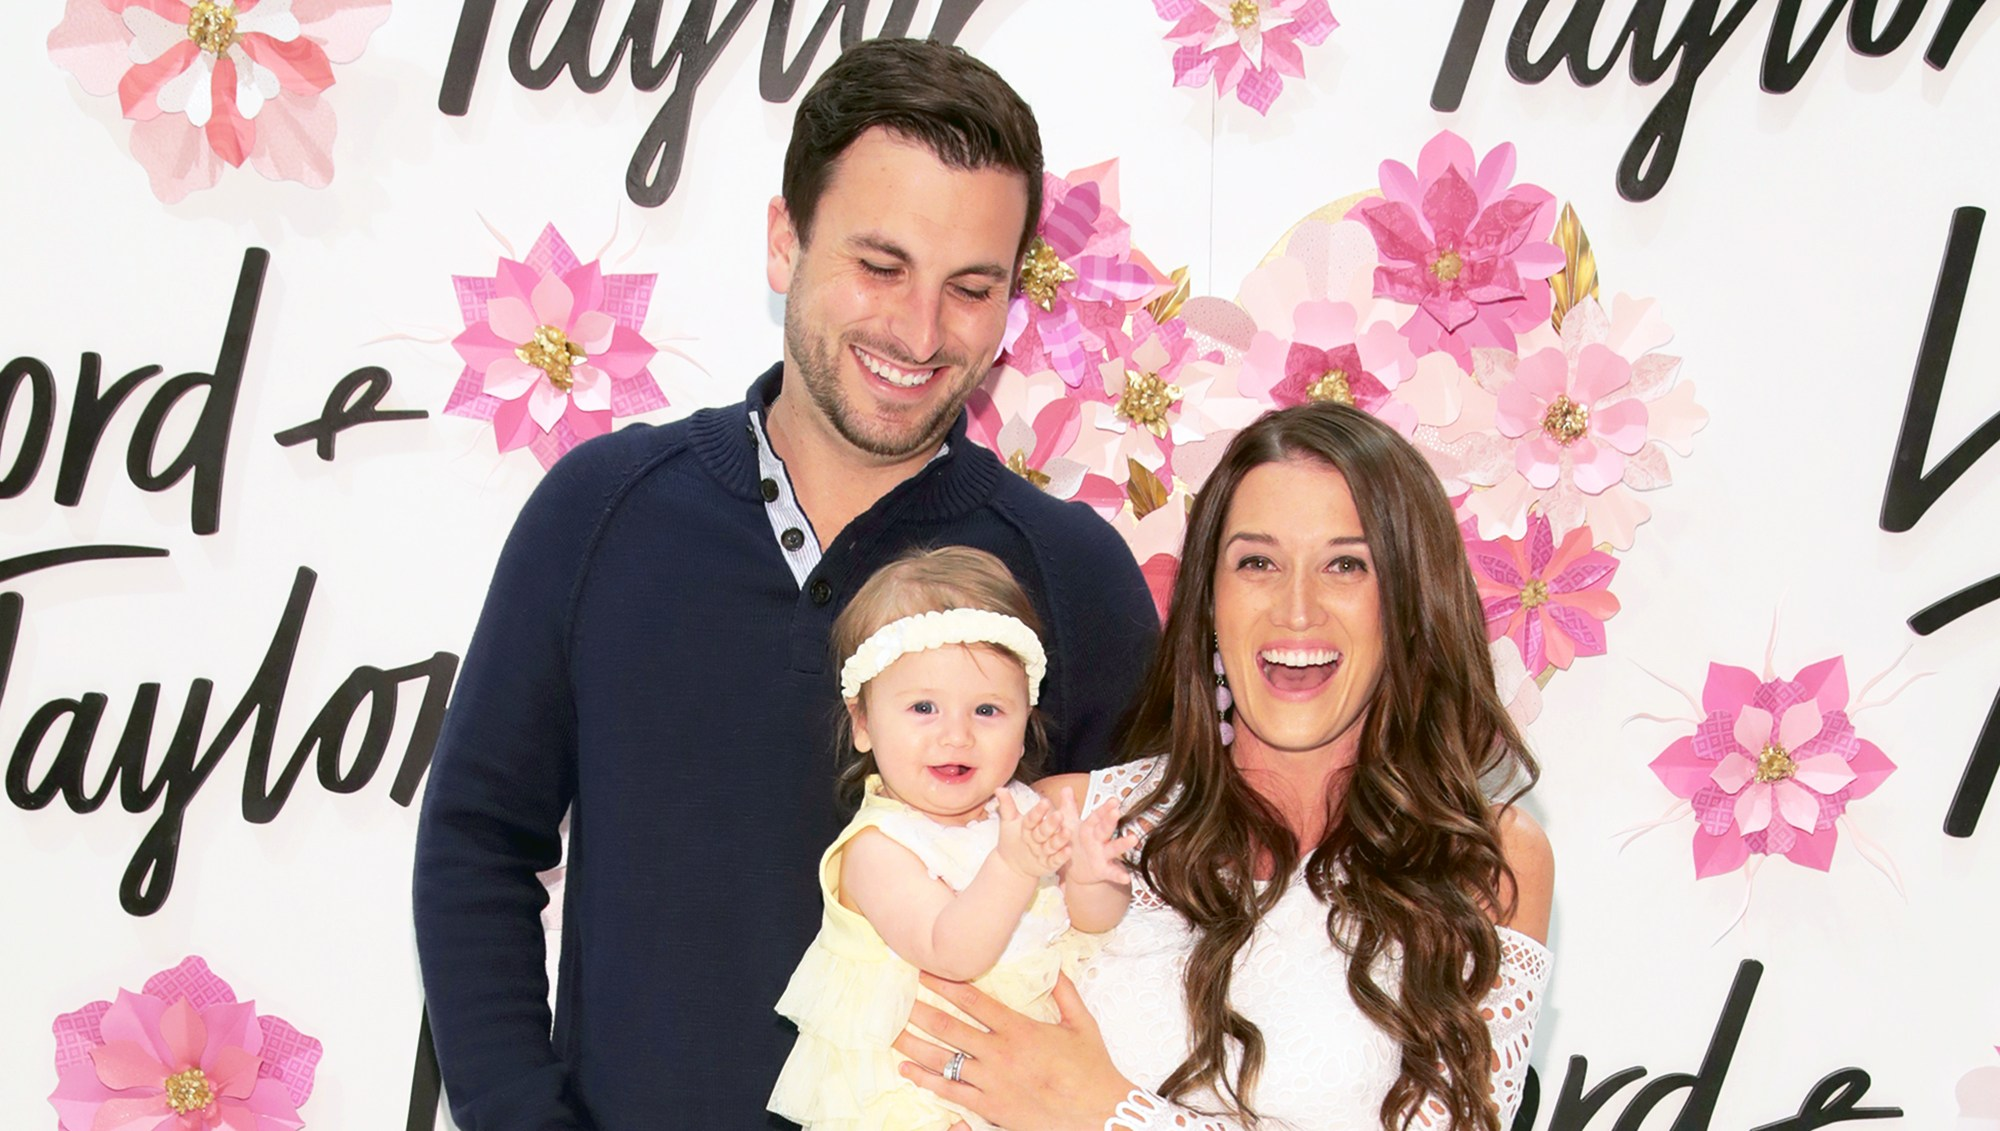 Tanner Tolbert and Jade Roper and daughter Emerson celebrate Mother's Day At Lord & Taylor Fifth Avenue on April 26, 2018 in New York City.